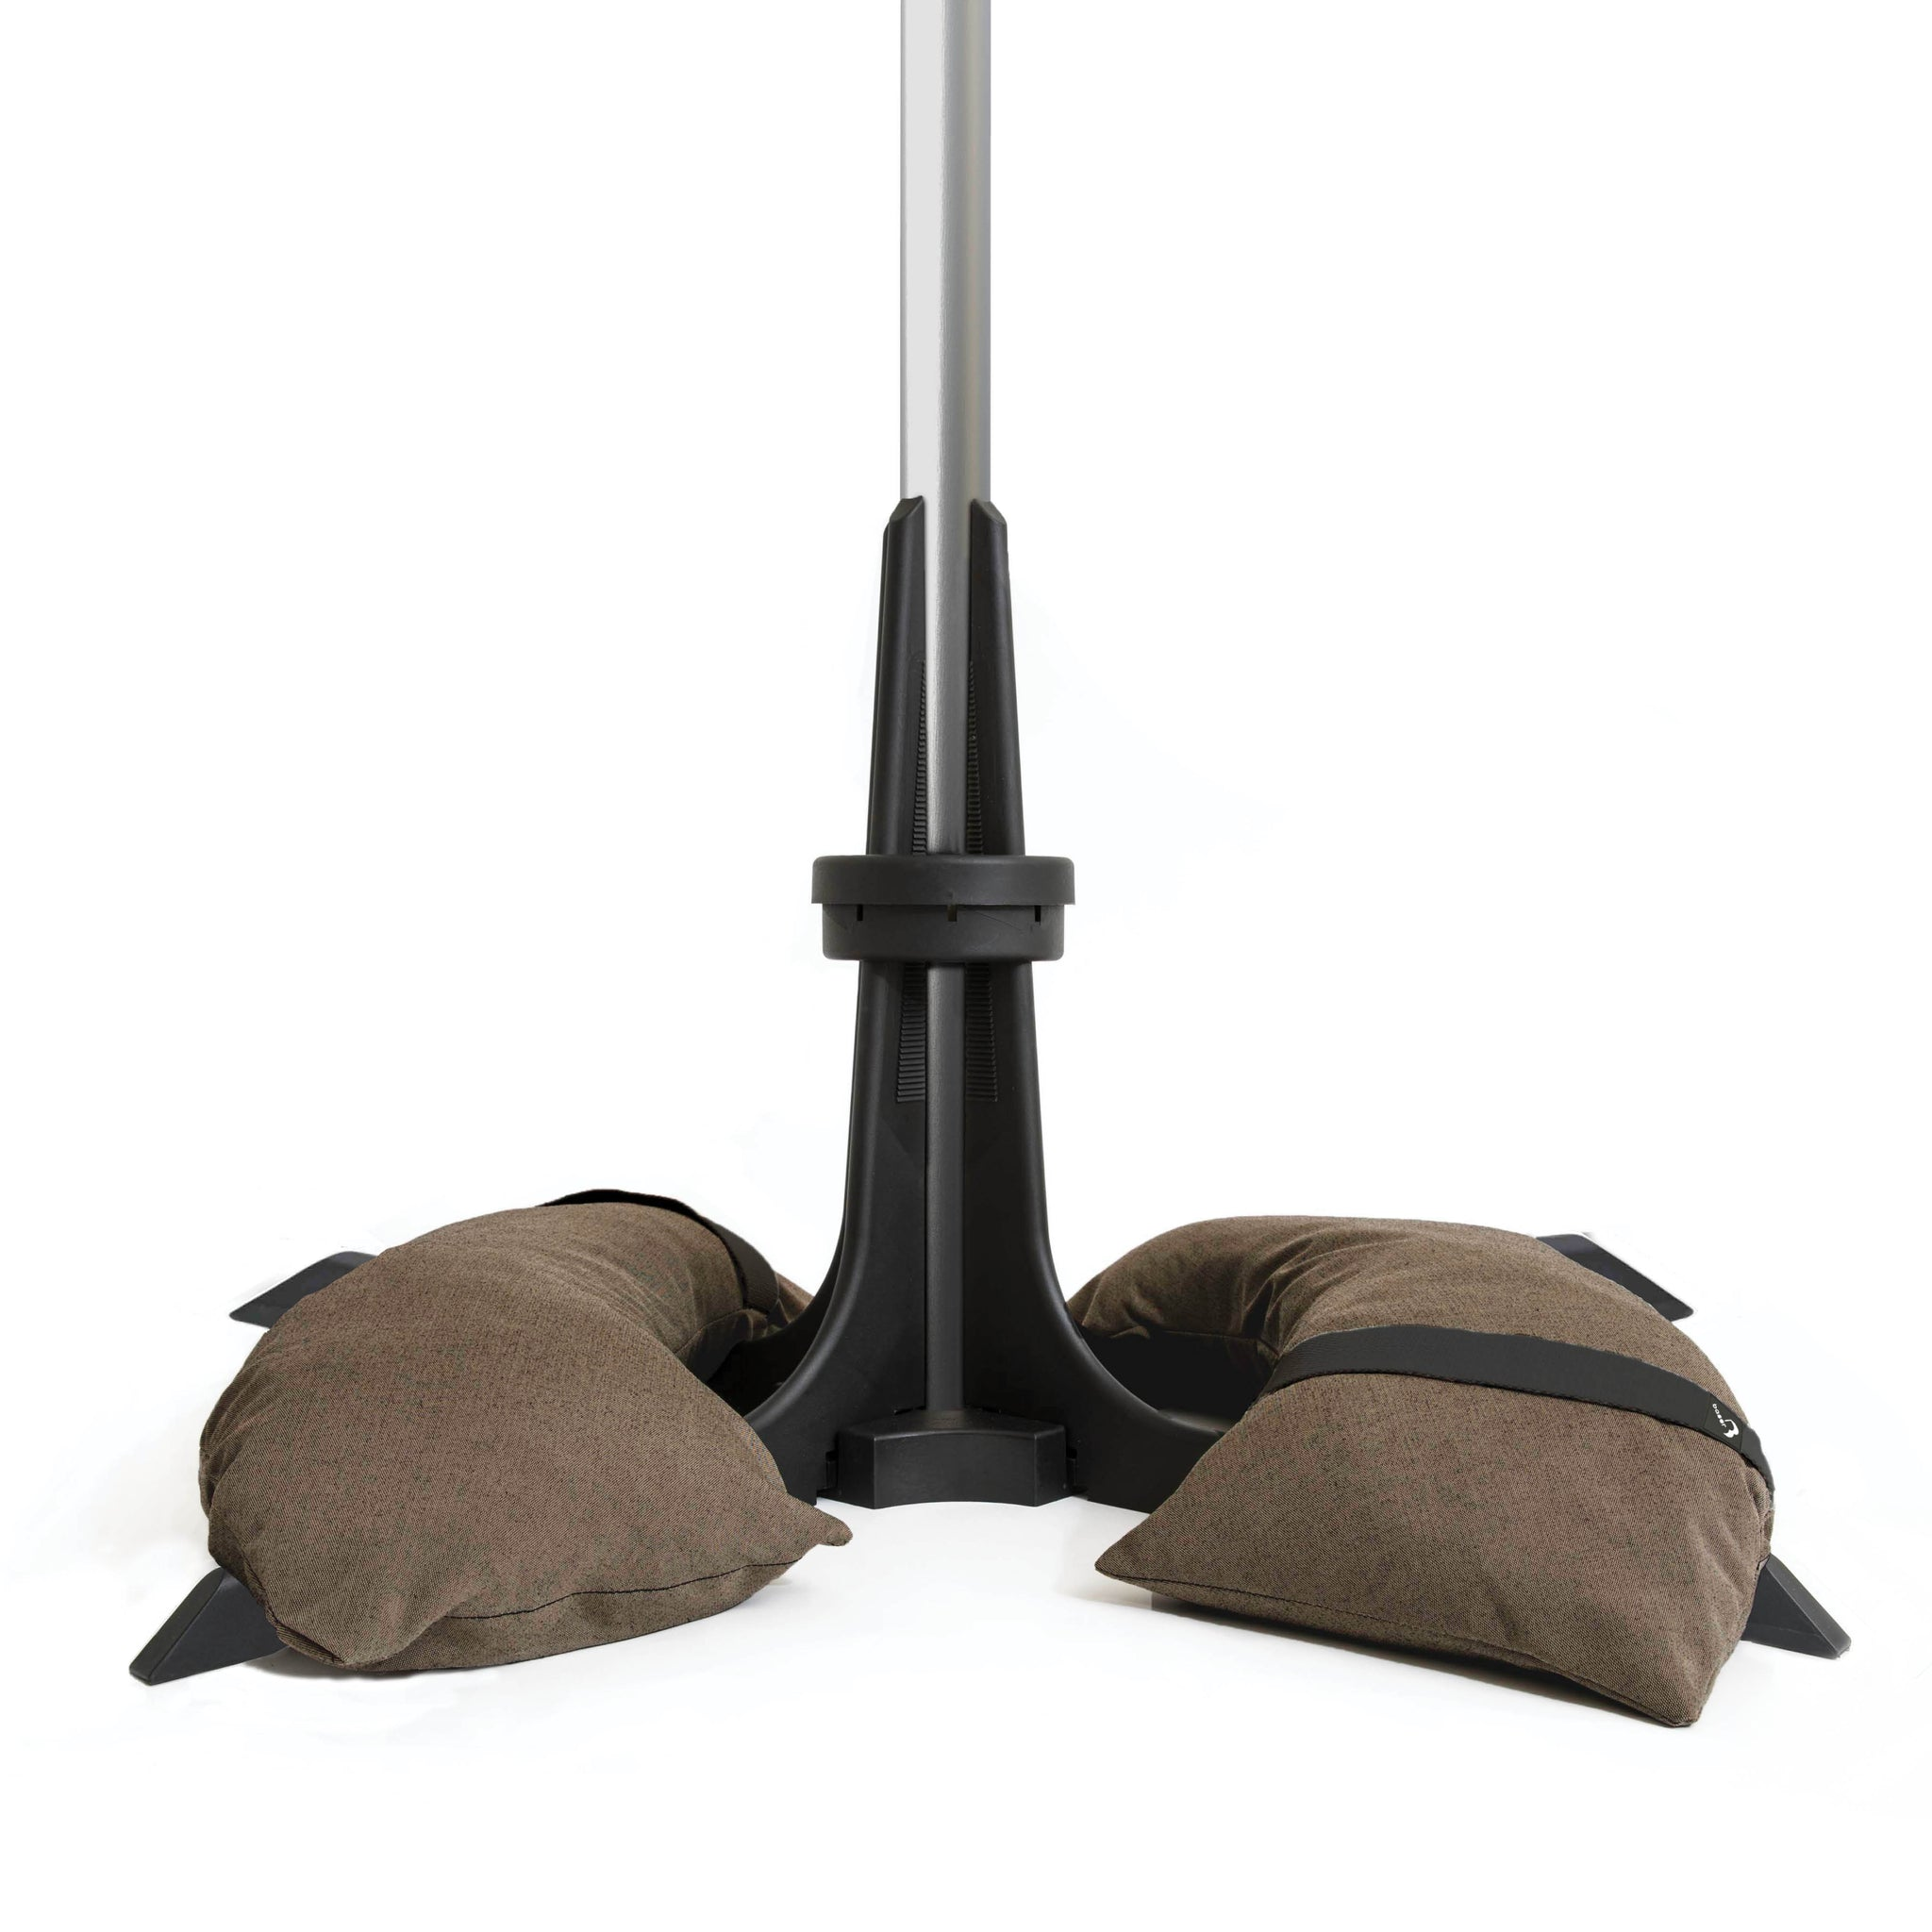 Baser parasol Base with sandbags Baser patio Umbrella base with sandbags 40 kg 88 lbs